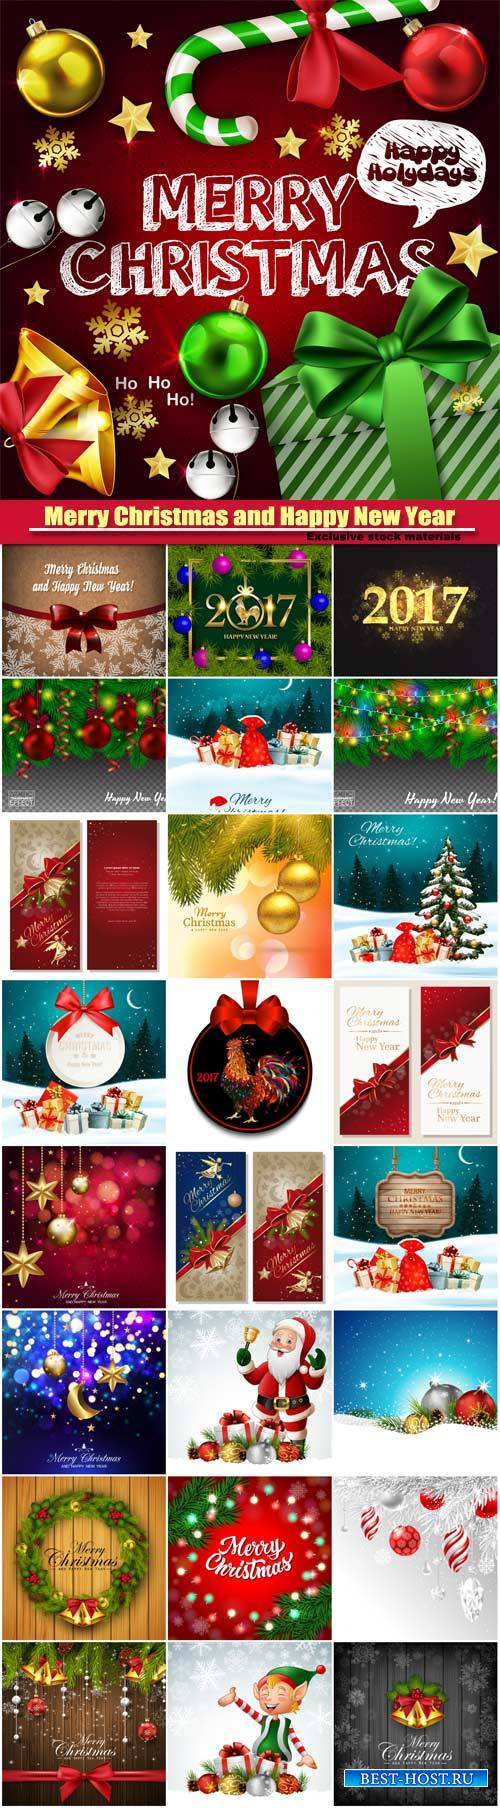 Merry Christmas and Happy New Year vector, greeting cards, leaflets and bro ...